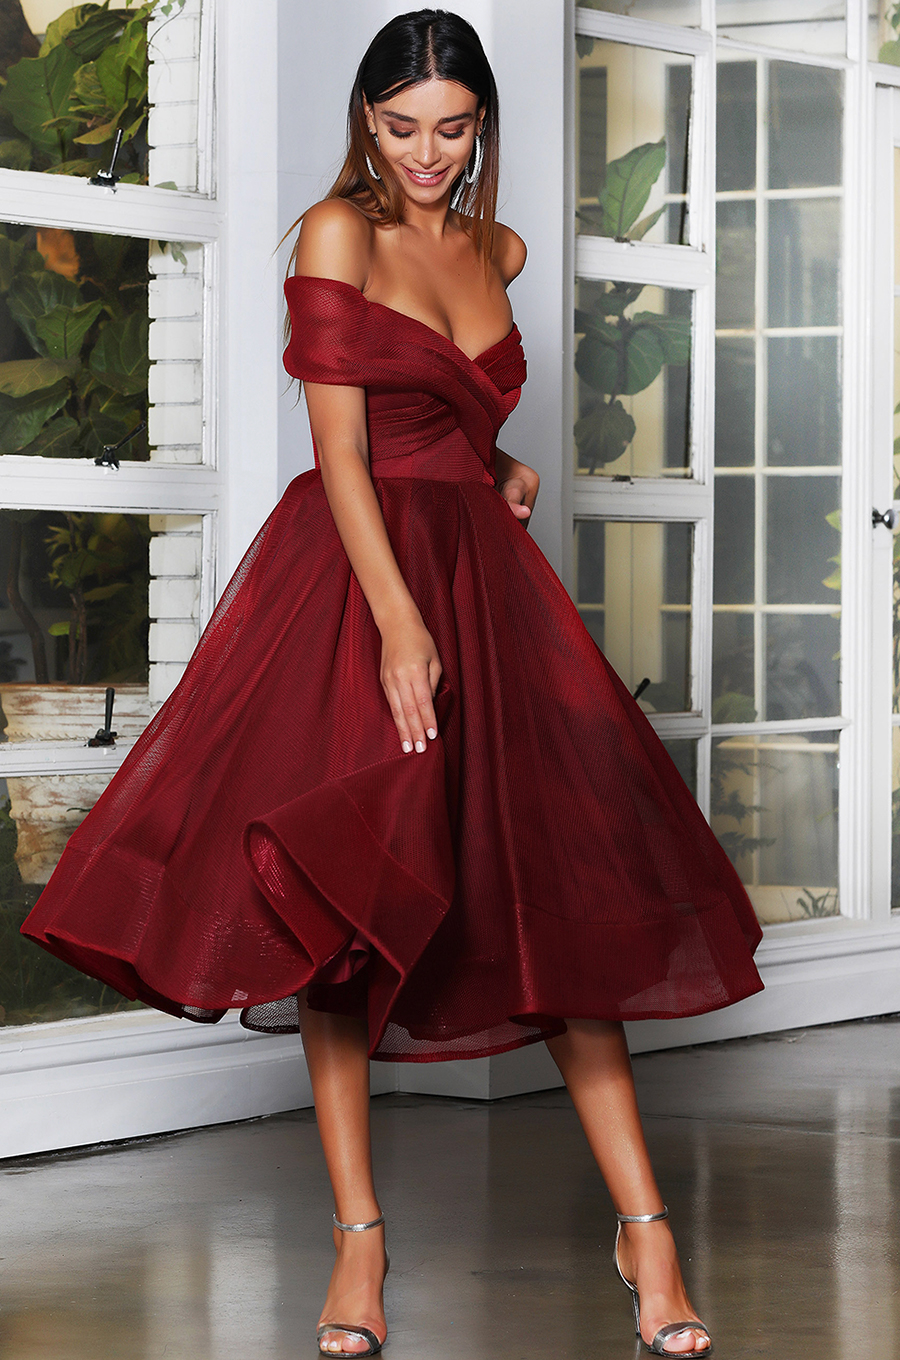 Midi-length dress in off-shoulder silhouette with a flared pleated skirt and crinolin hemline